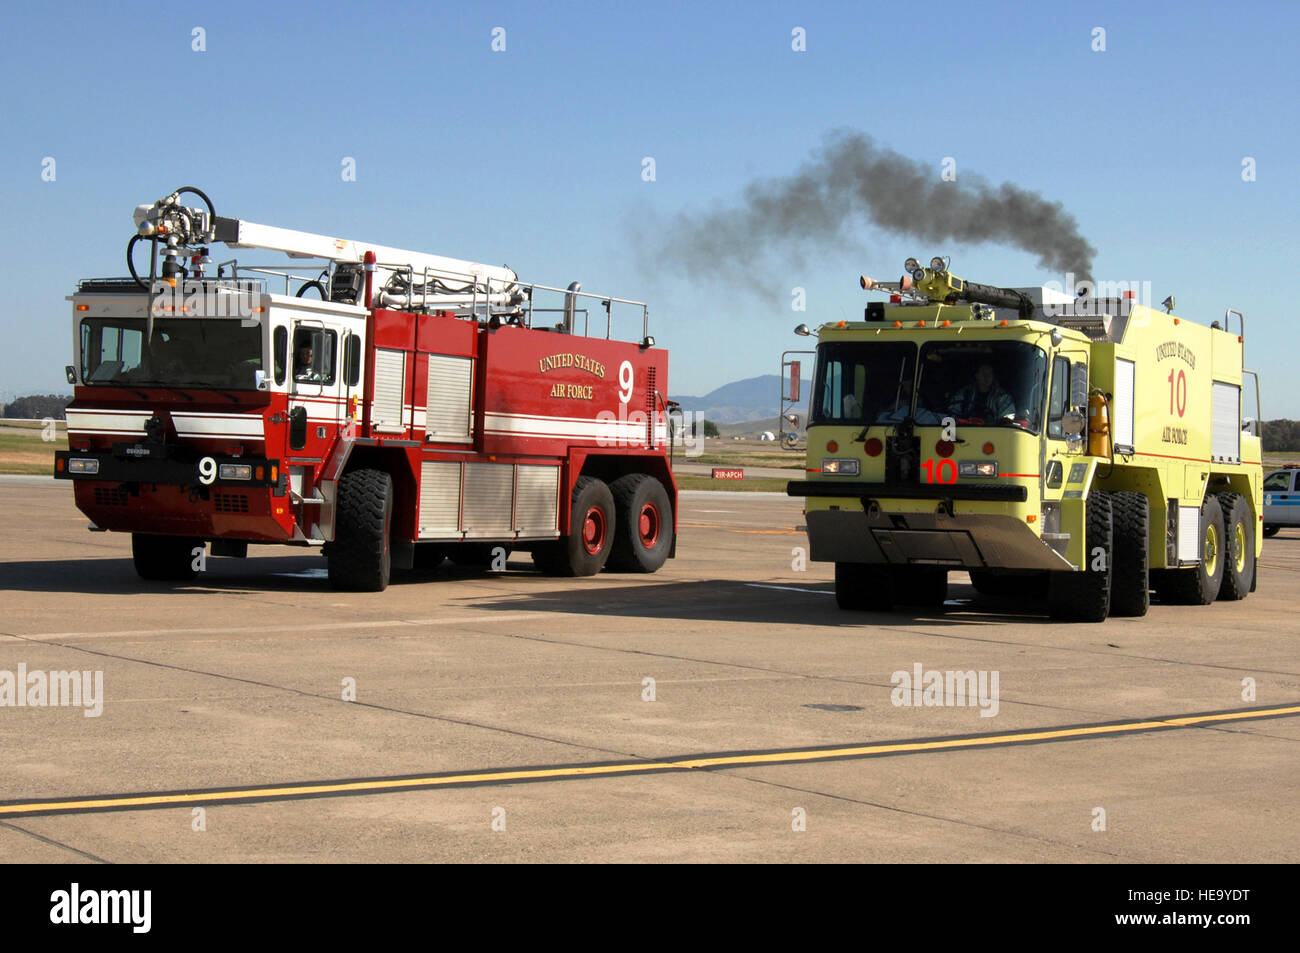 Electrical Fire Stock Photos Images Alamy 07 Jk Fuse Box Engines Rush To A Mock On An Aircraft During Exercise Crisis Fury